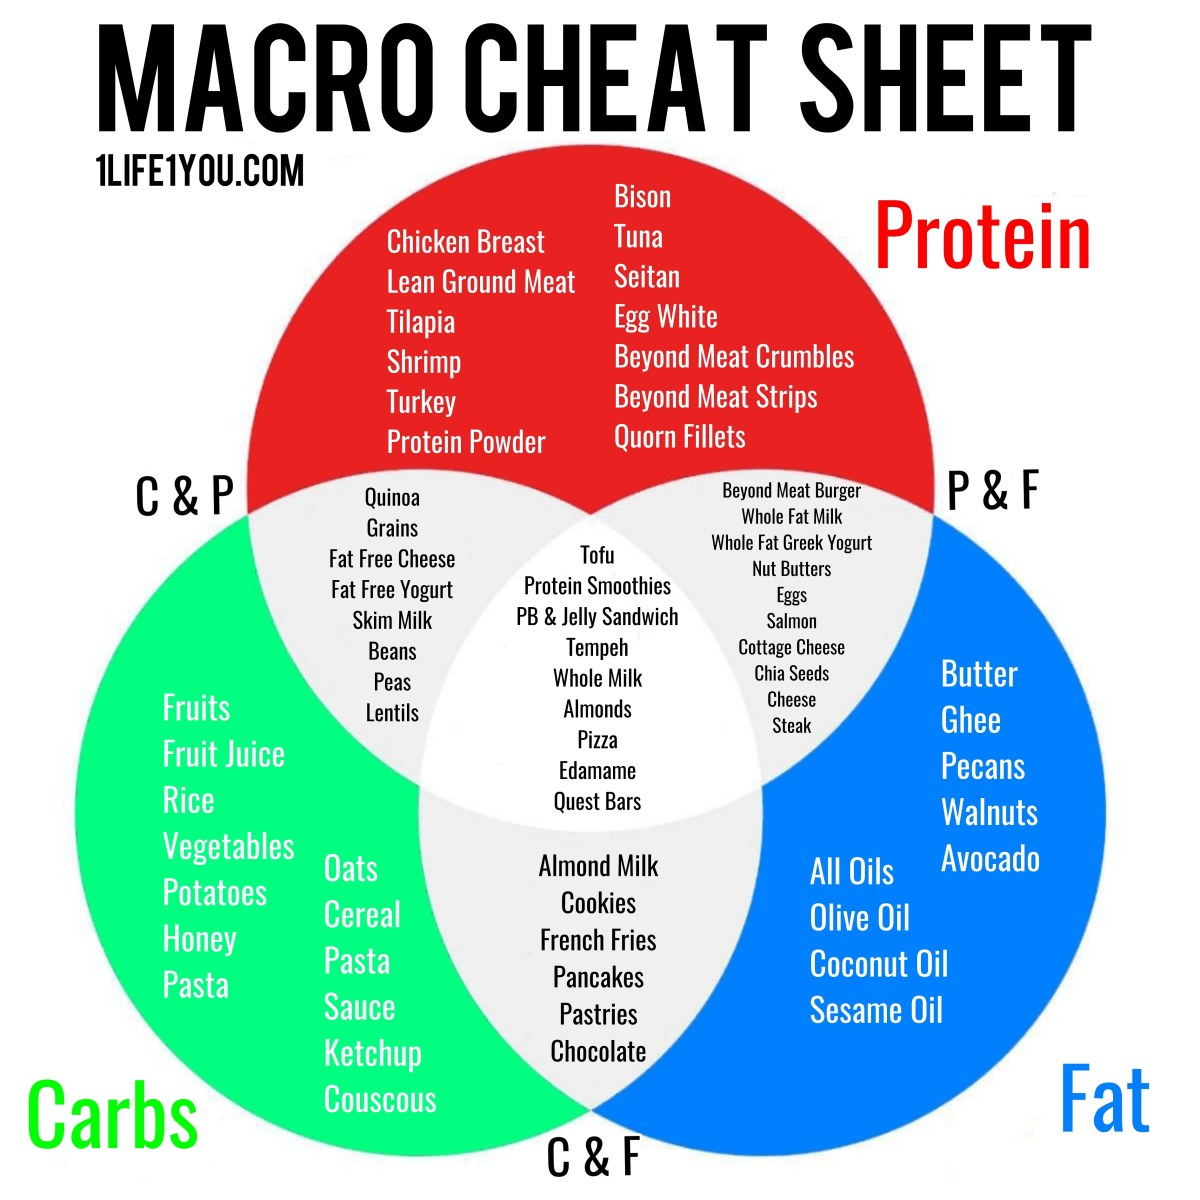 Macro Cheat Sheet